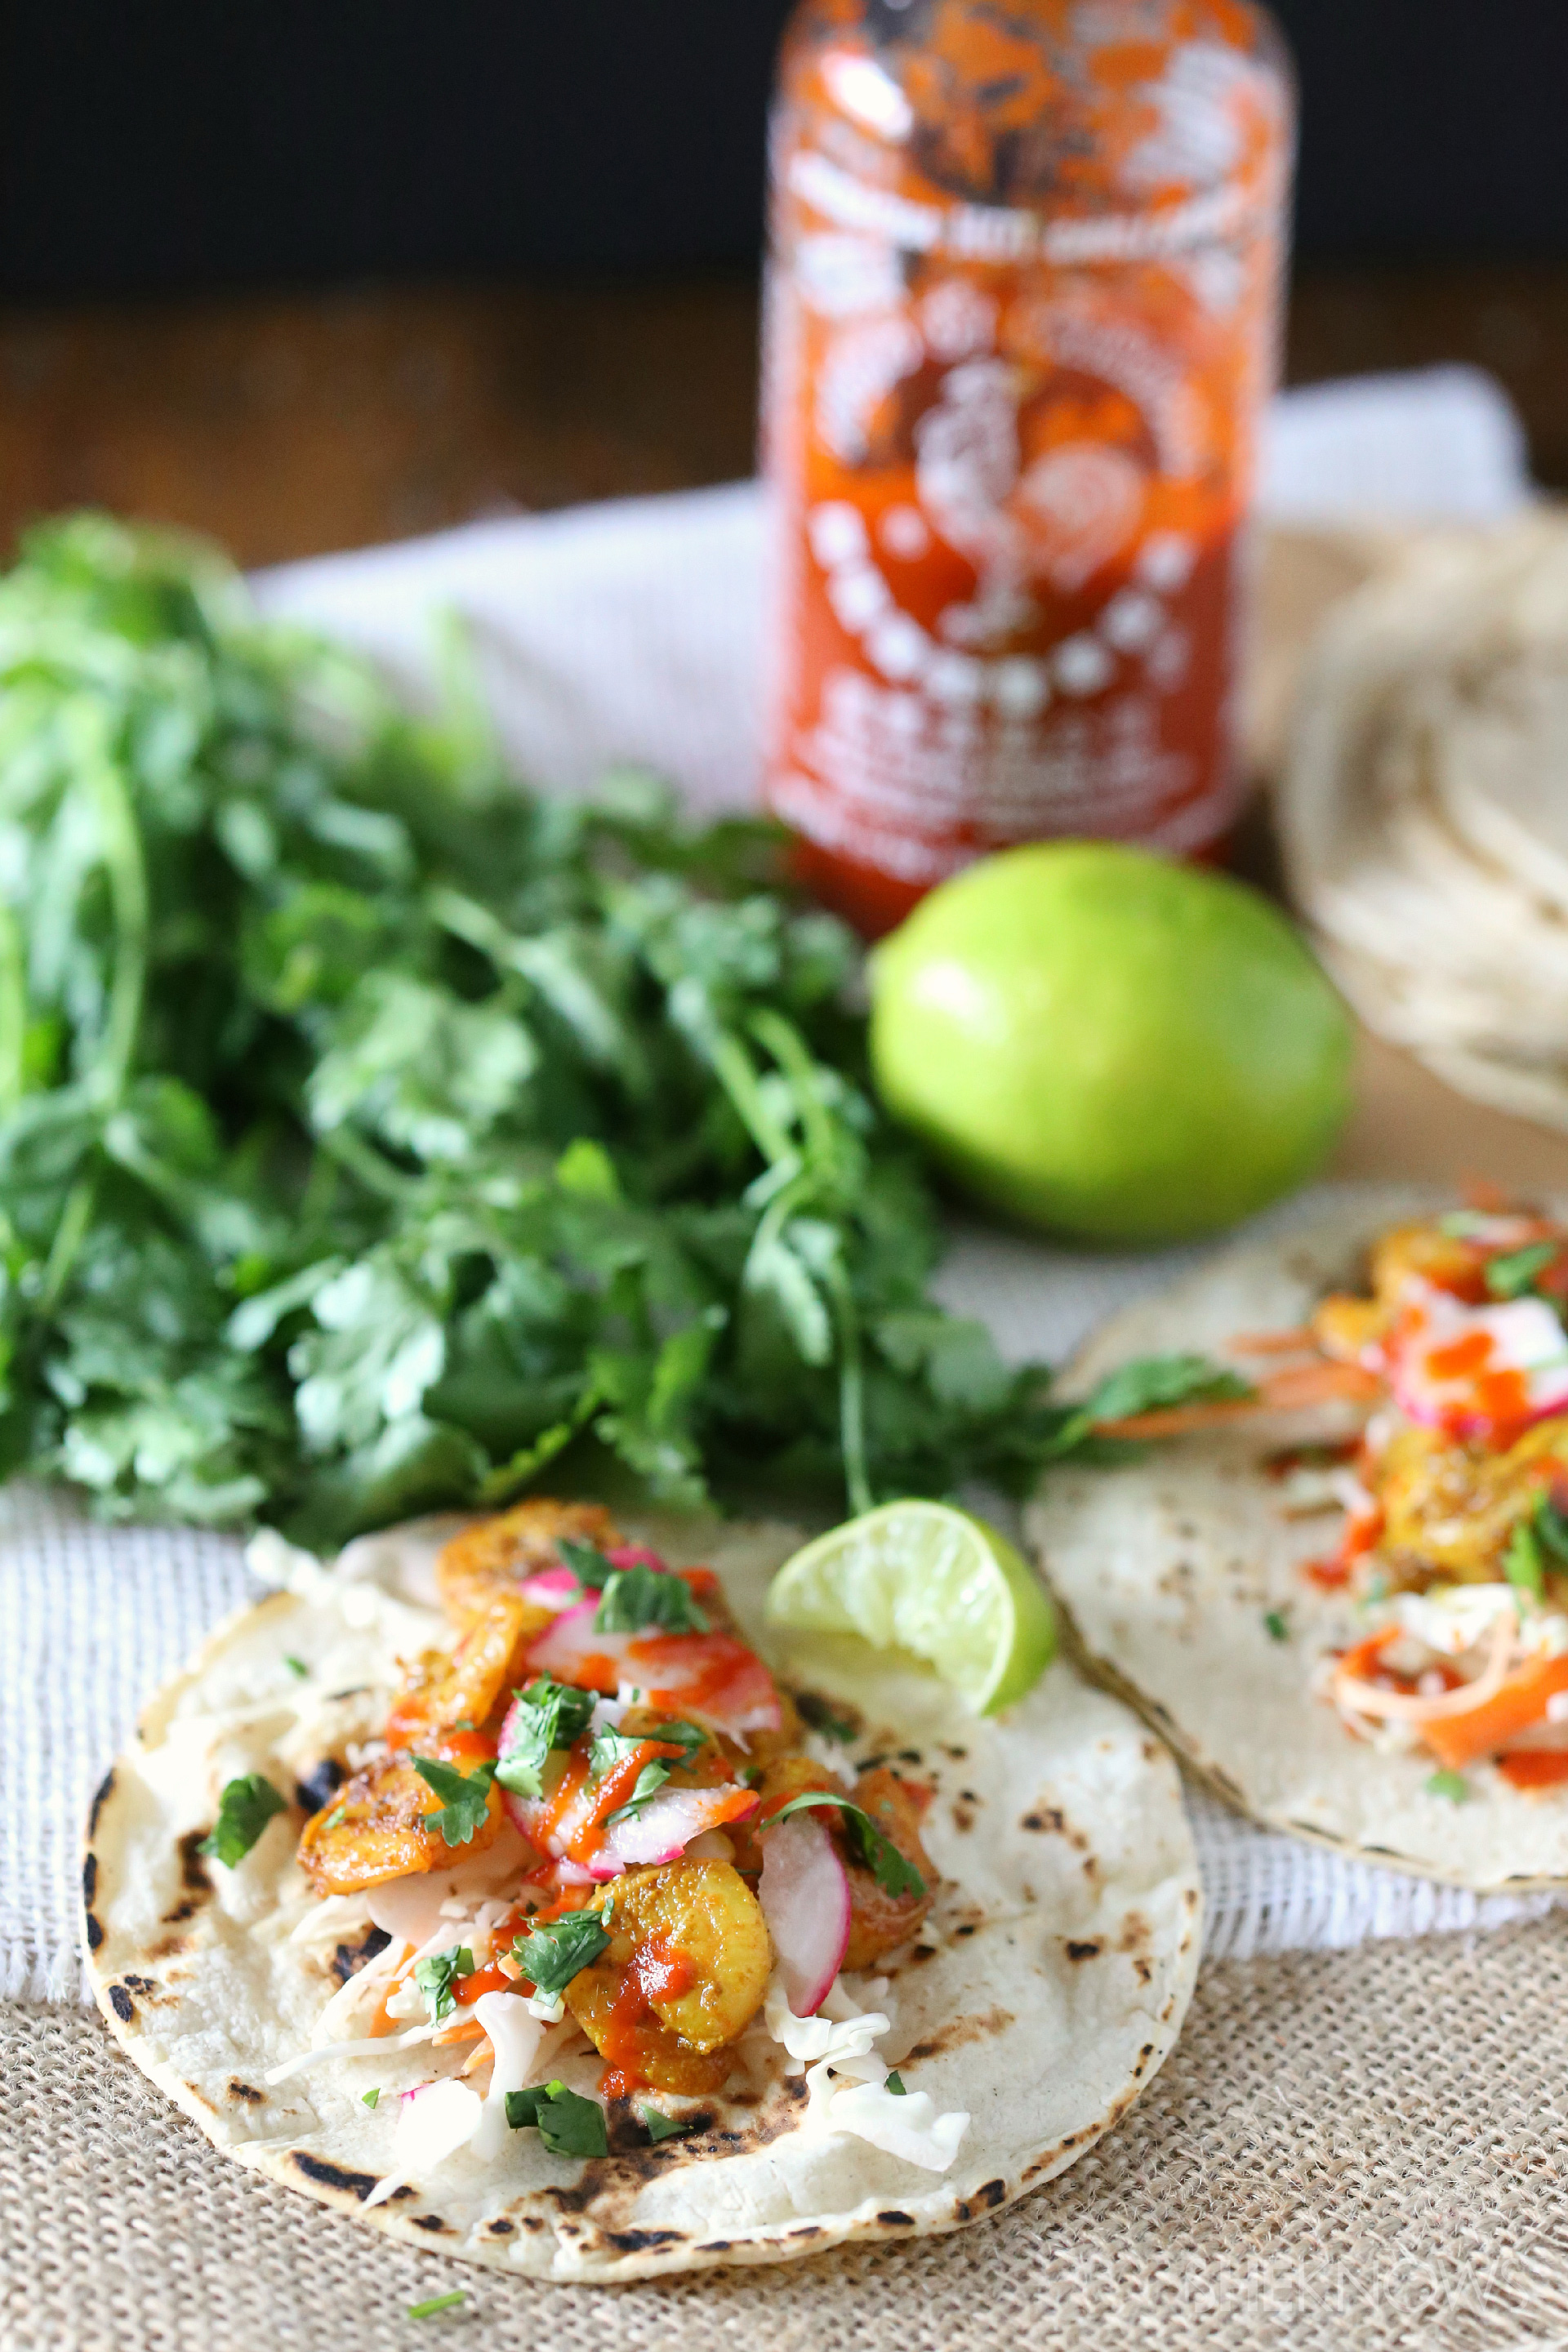 Curried shrimp tacos